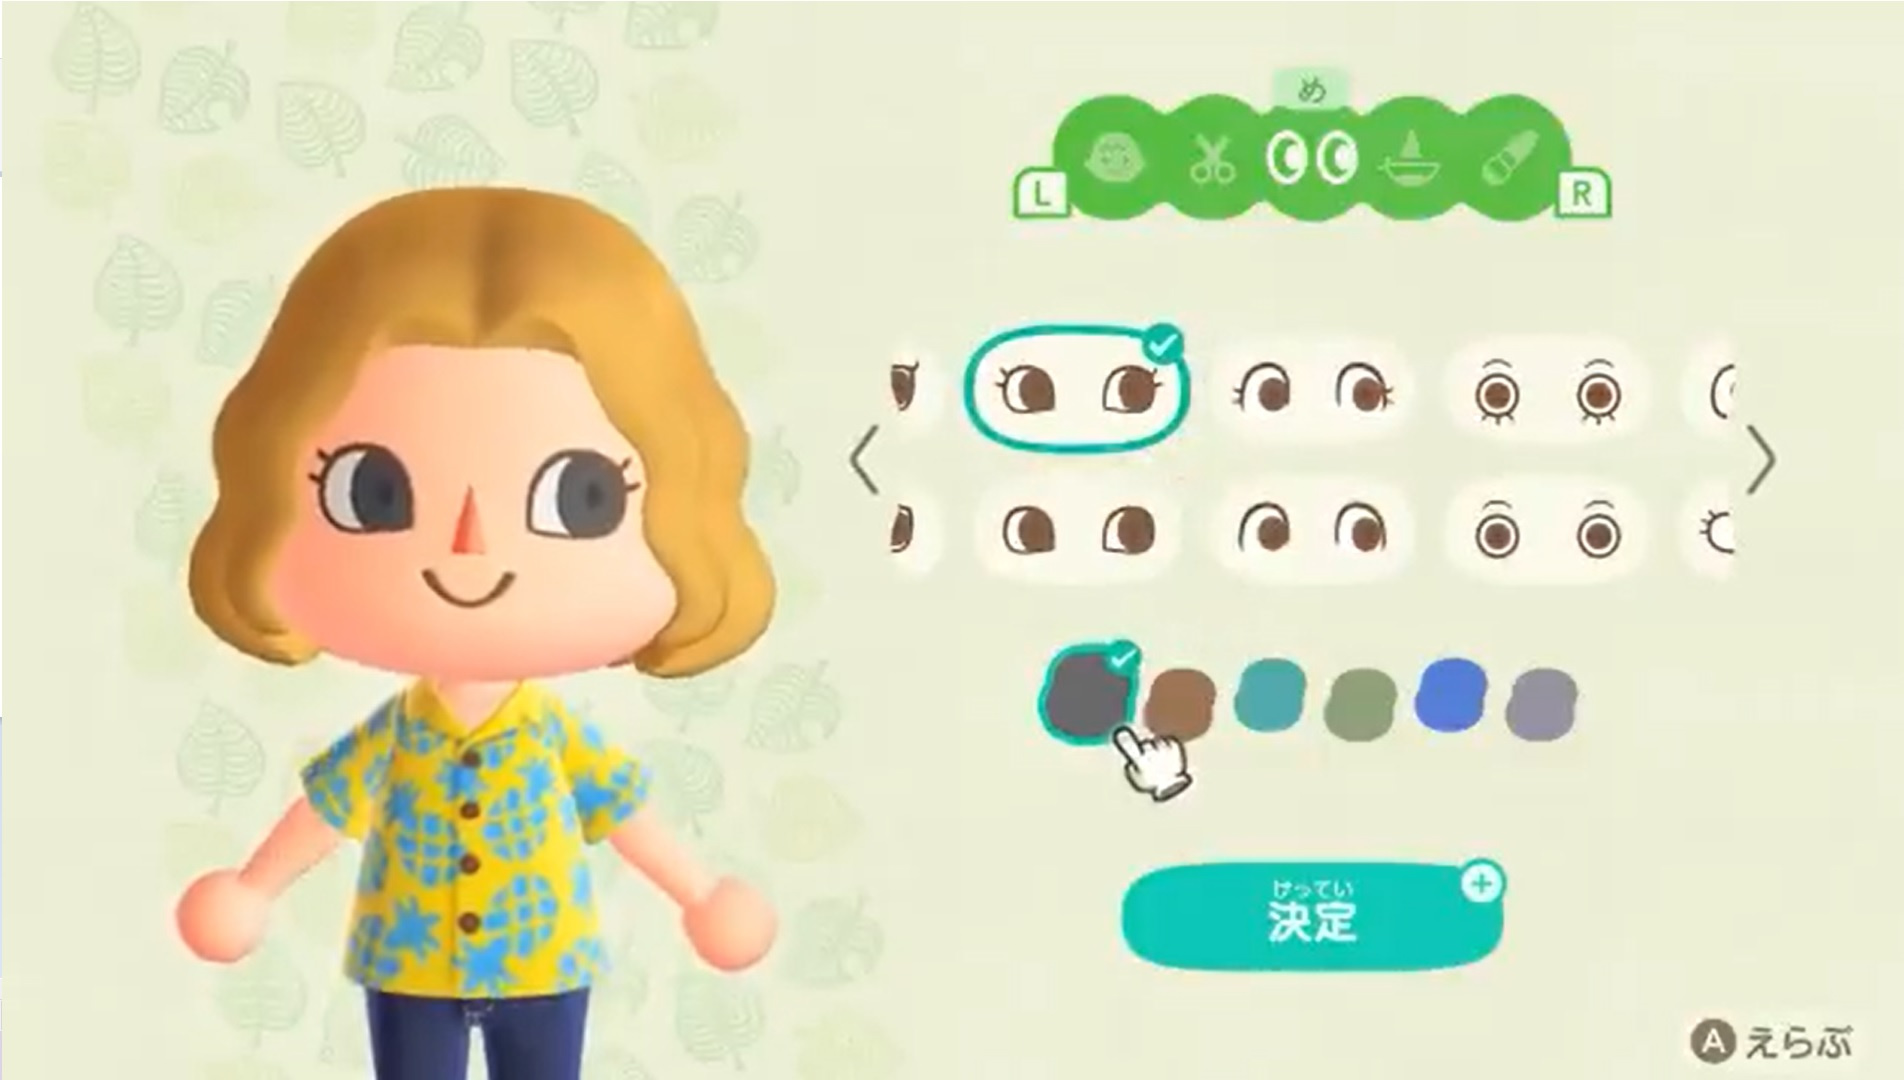 Customise Your Villager More Than Ever Before In Animal Crossing New Horizons Nintendo Life